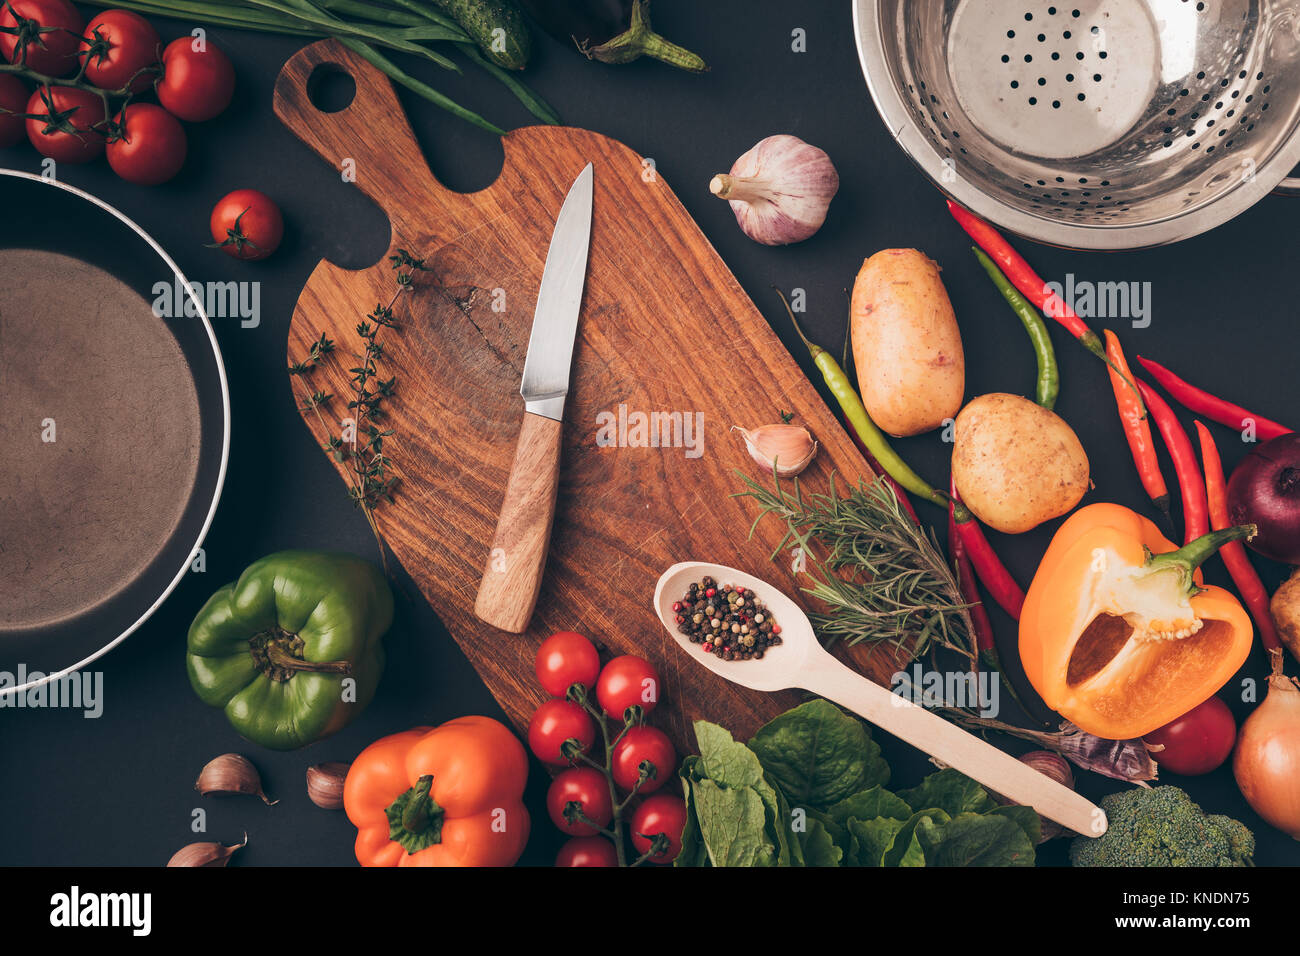 top view of knife and wooden board among vegetables - Stock Image